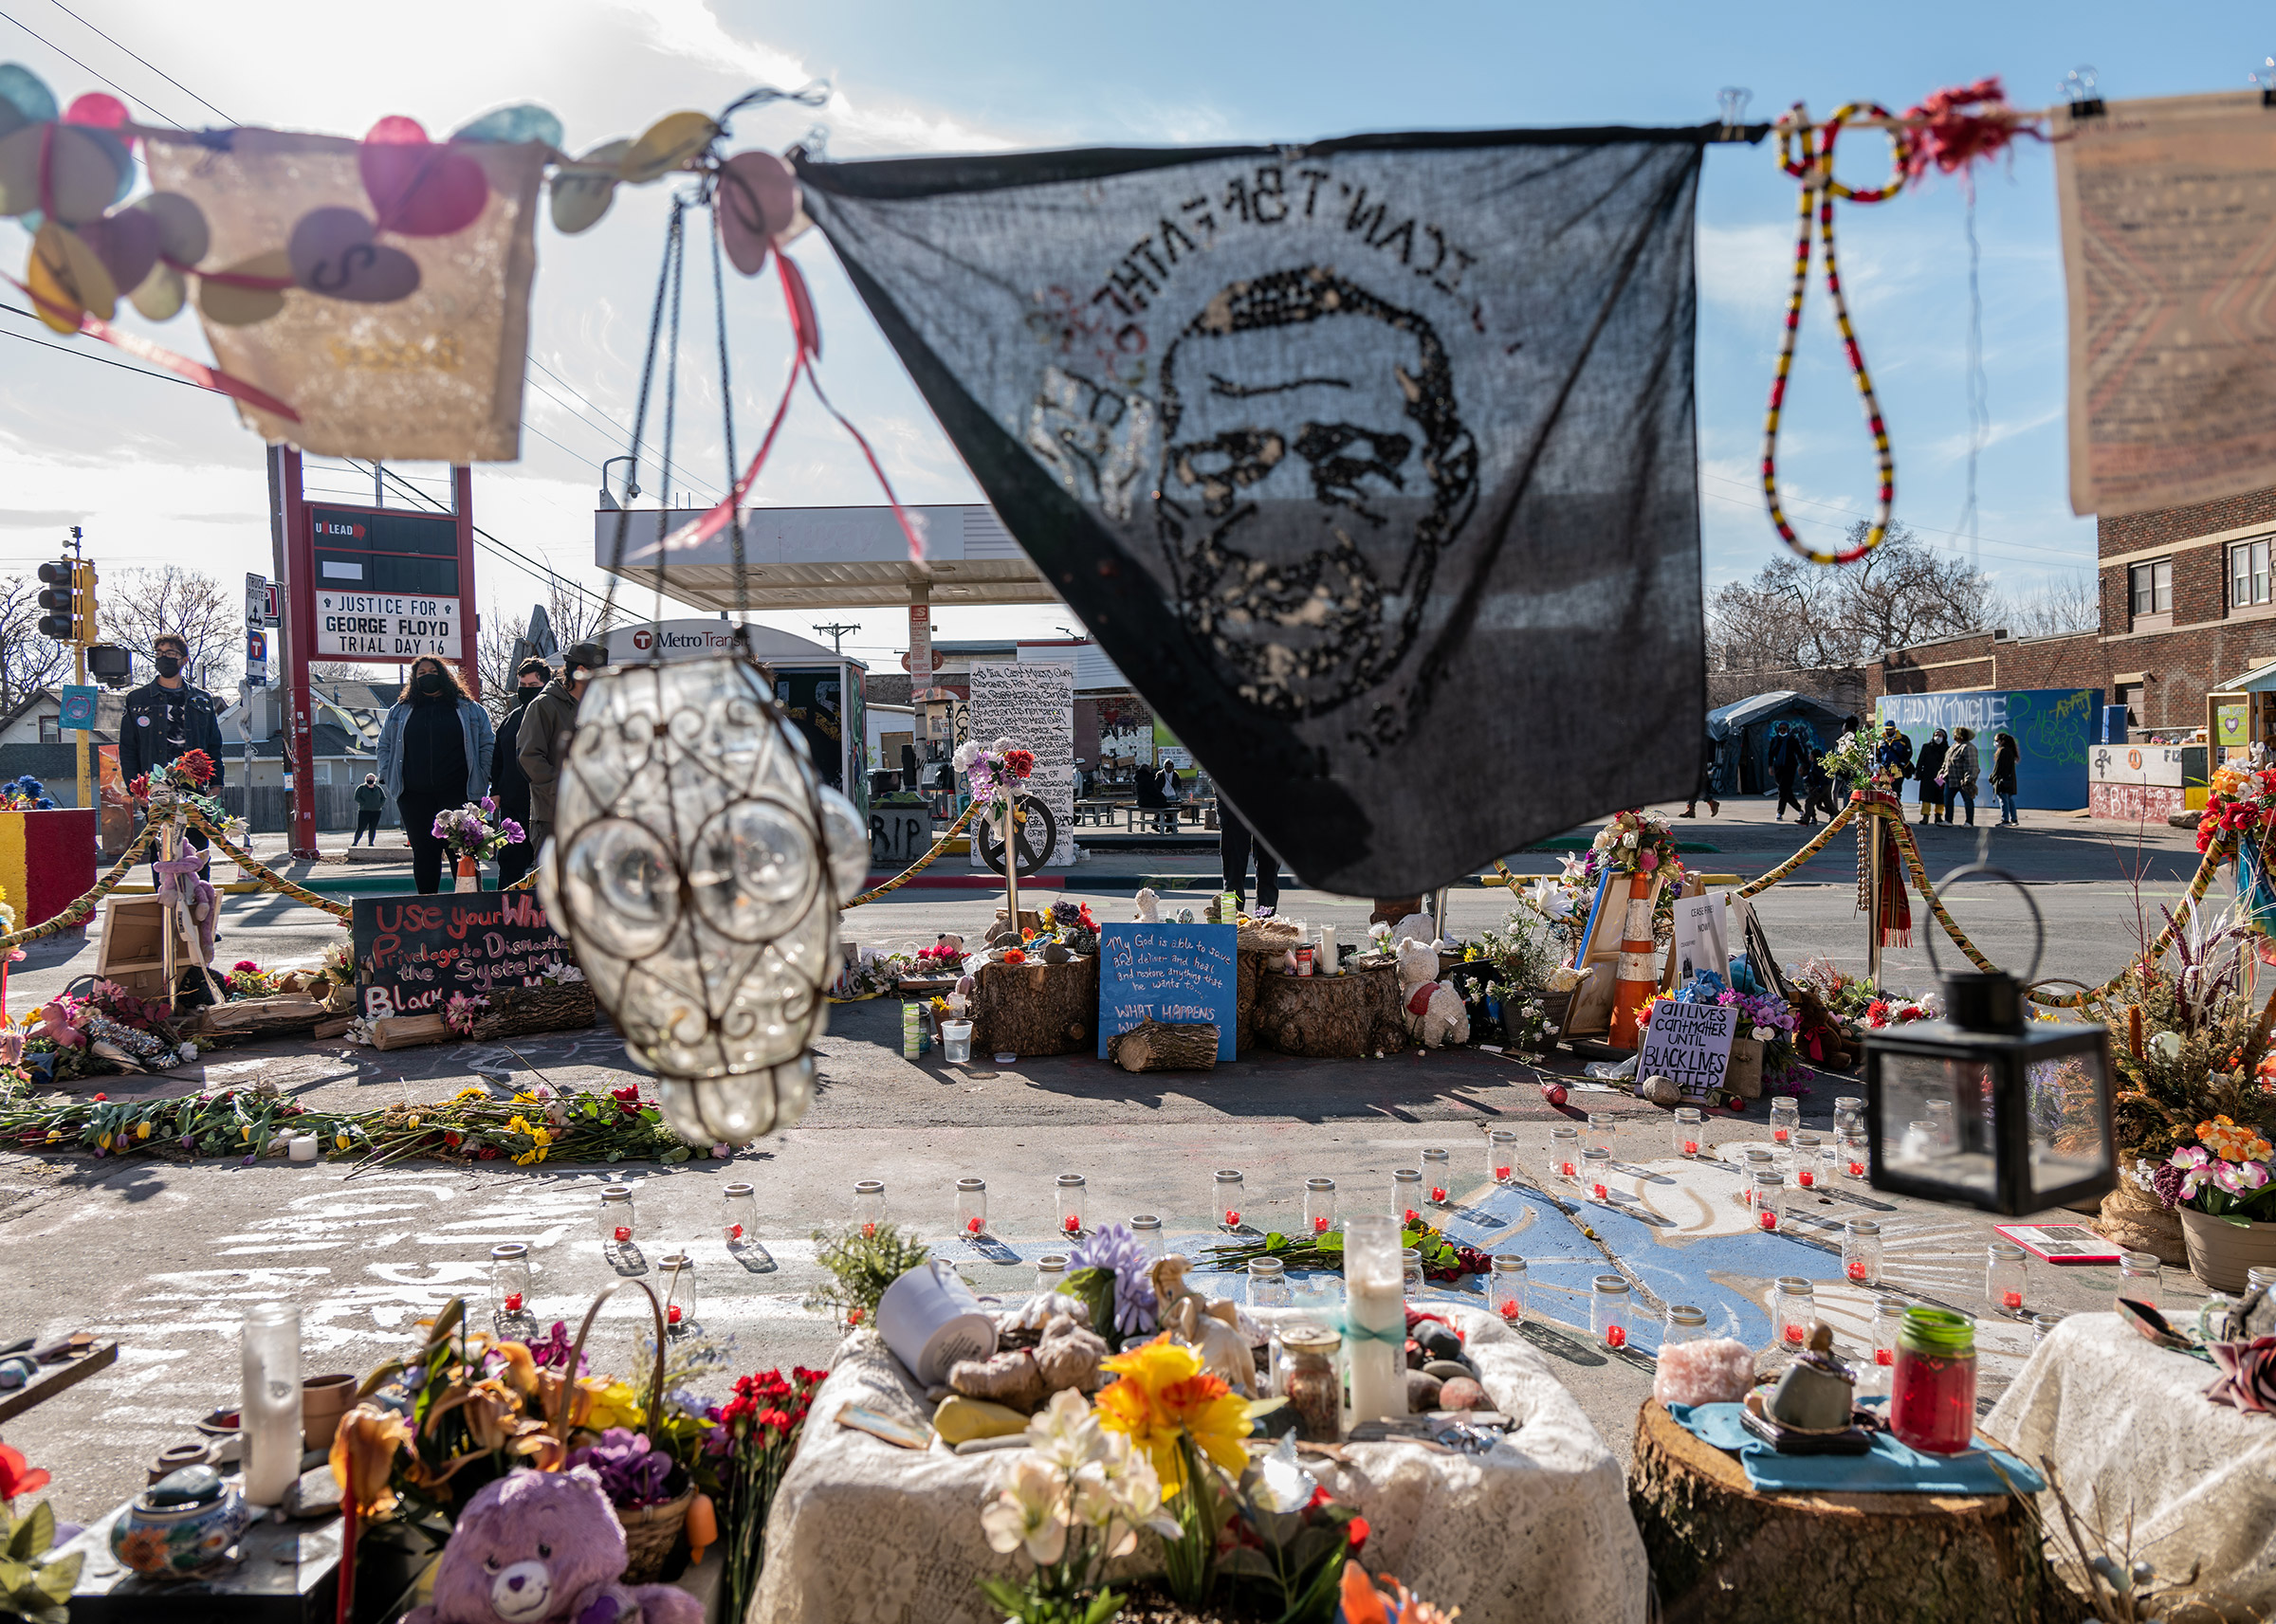 A handkerchief bearing George Floyd's image waves over candles, flowers and other items at the memorials in the square where he was killed in Minneapolis.